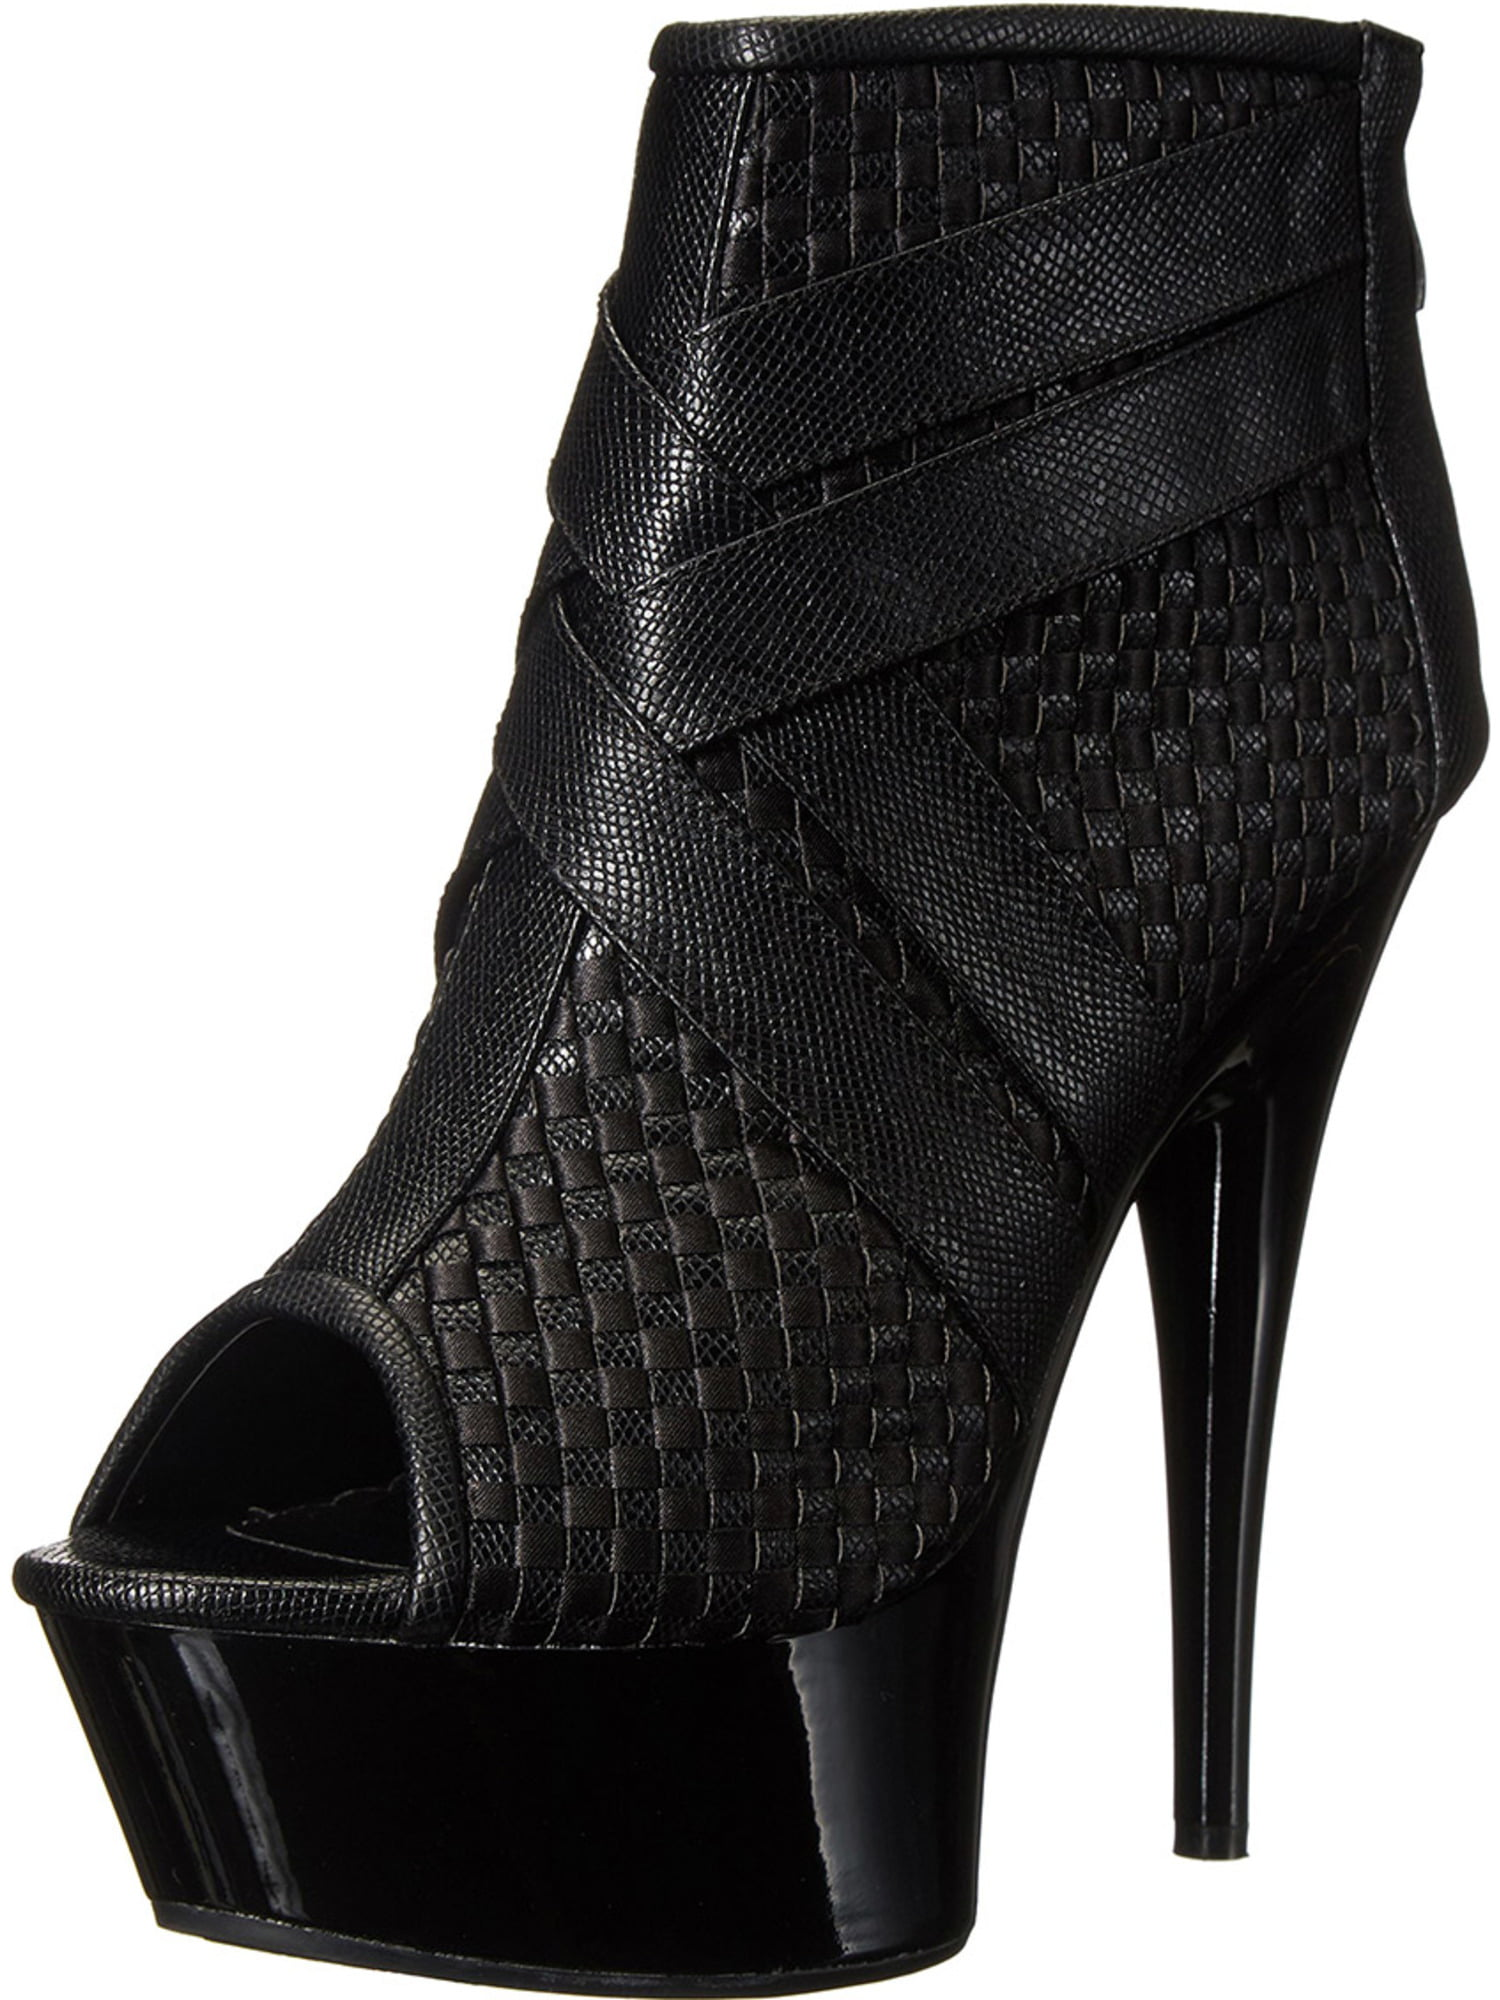 Sassy Black Ankle Booties with Basket Weave Texture and 6 Inch Stiletto Heels